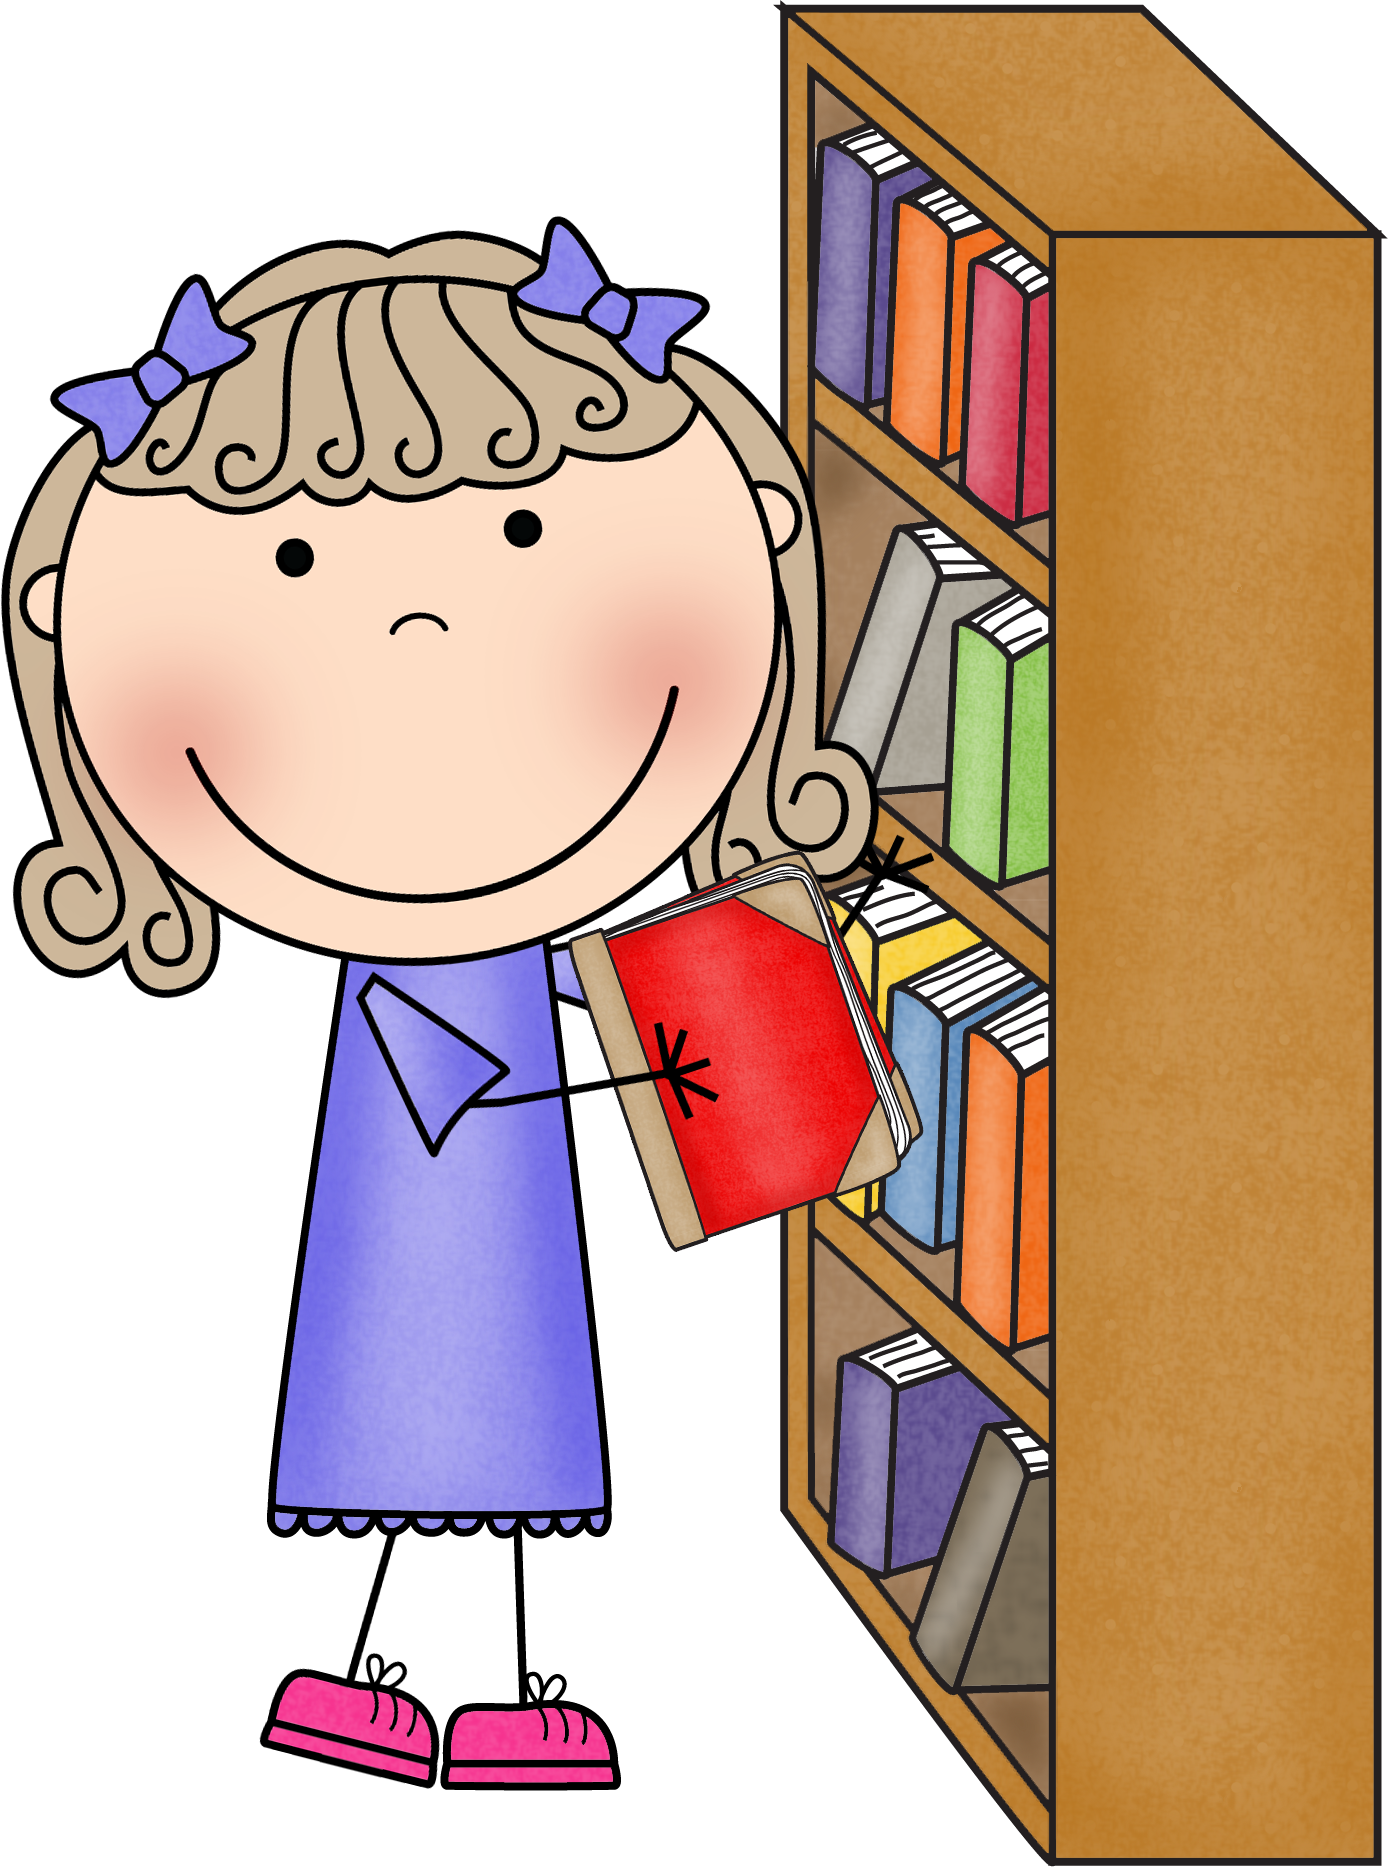 Preschool classroom helpers clipart images gallery for free download.